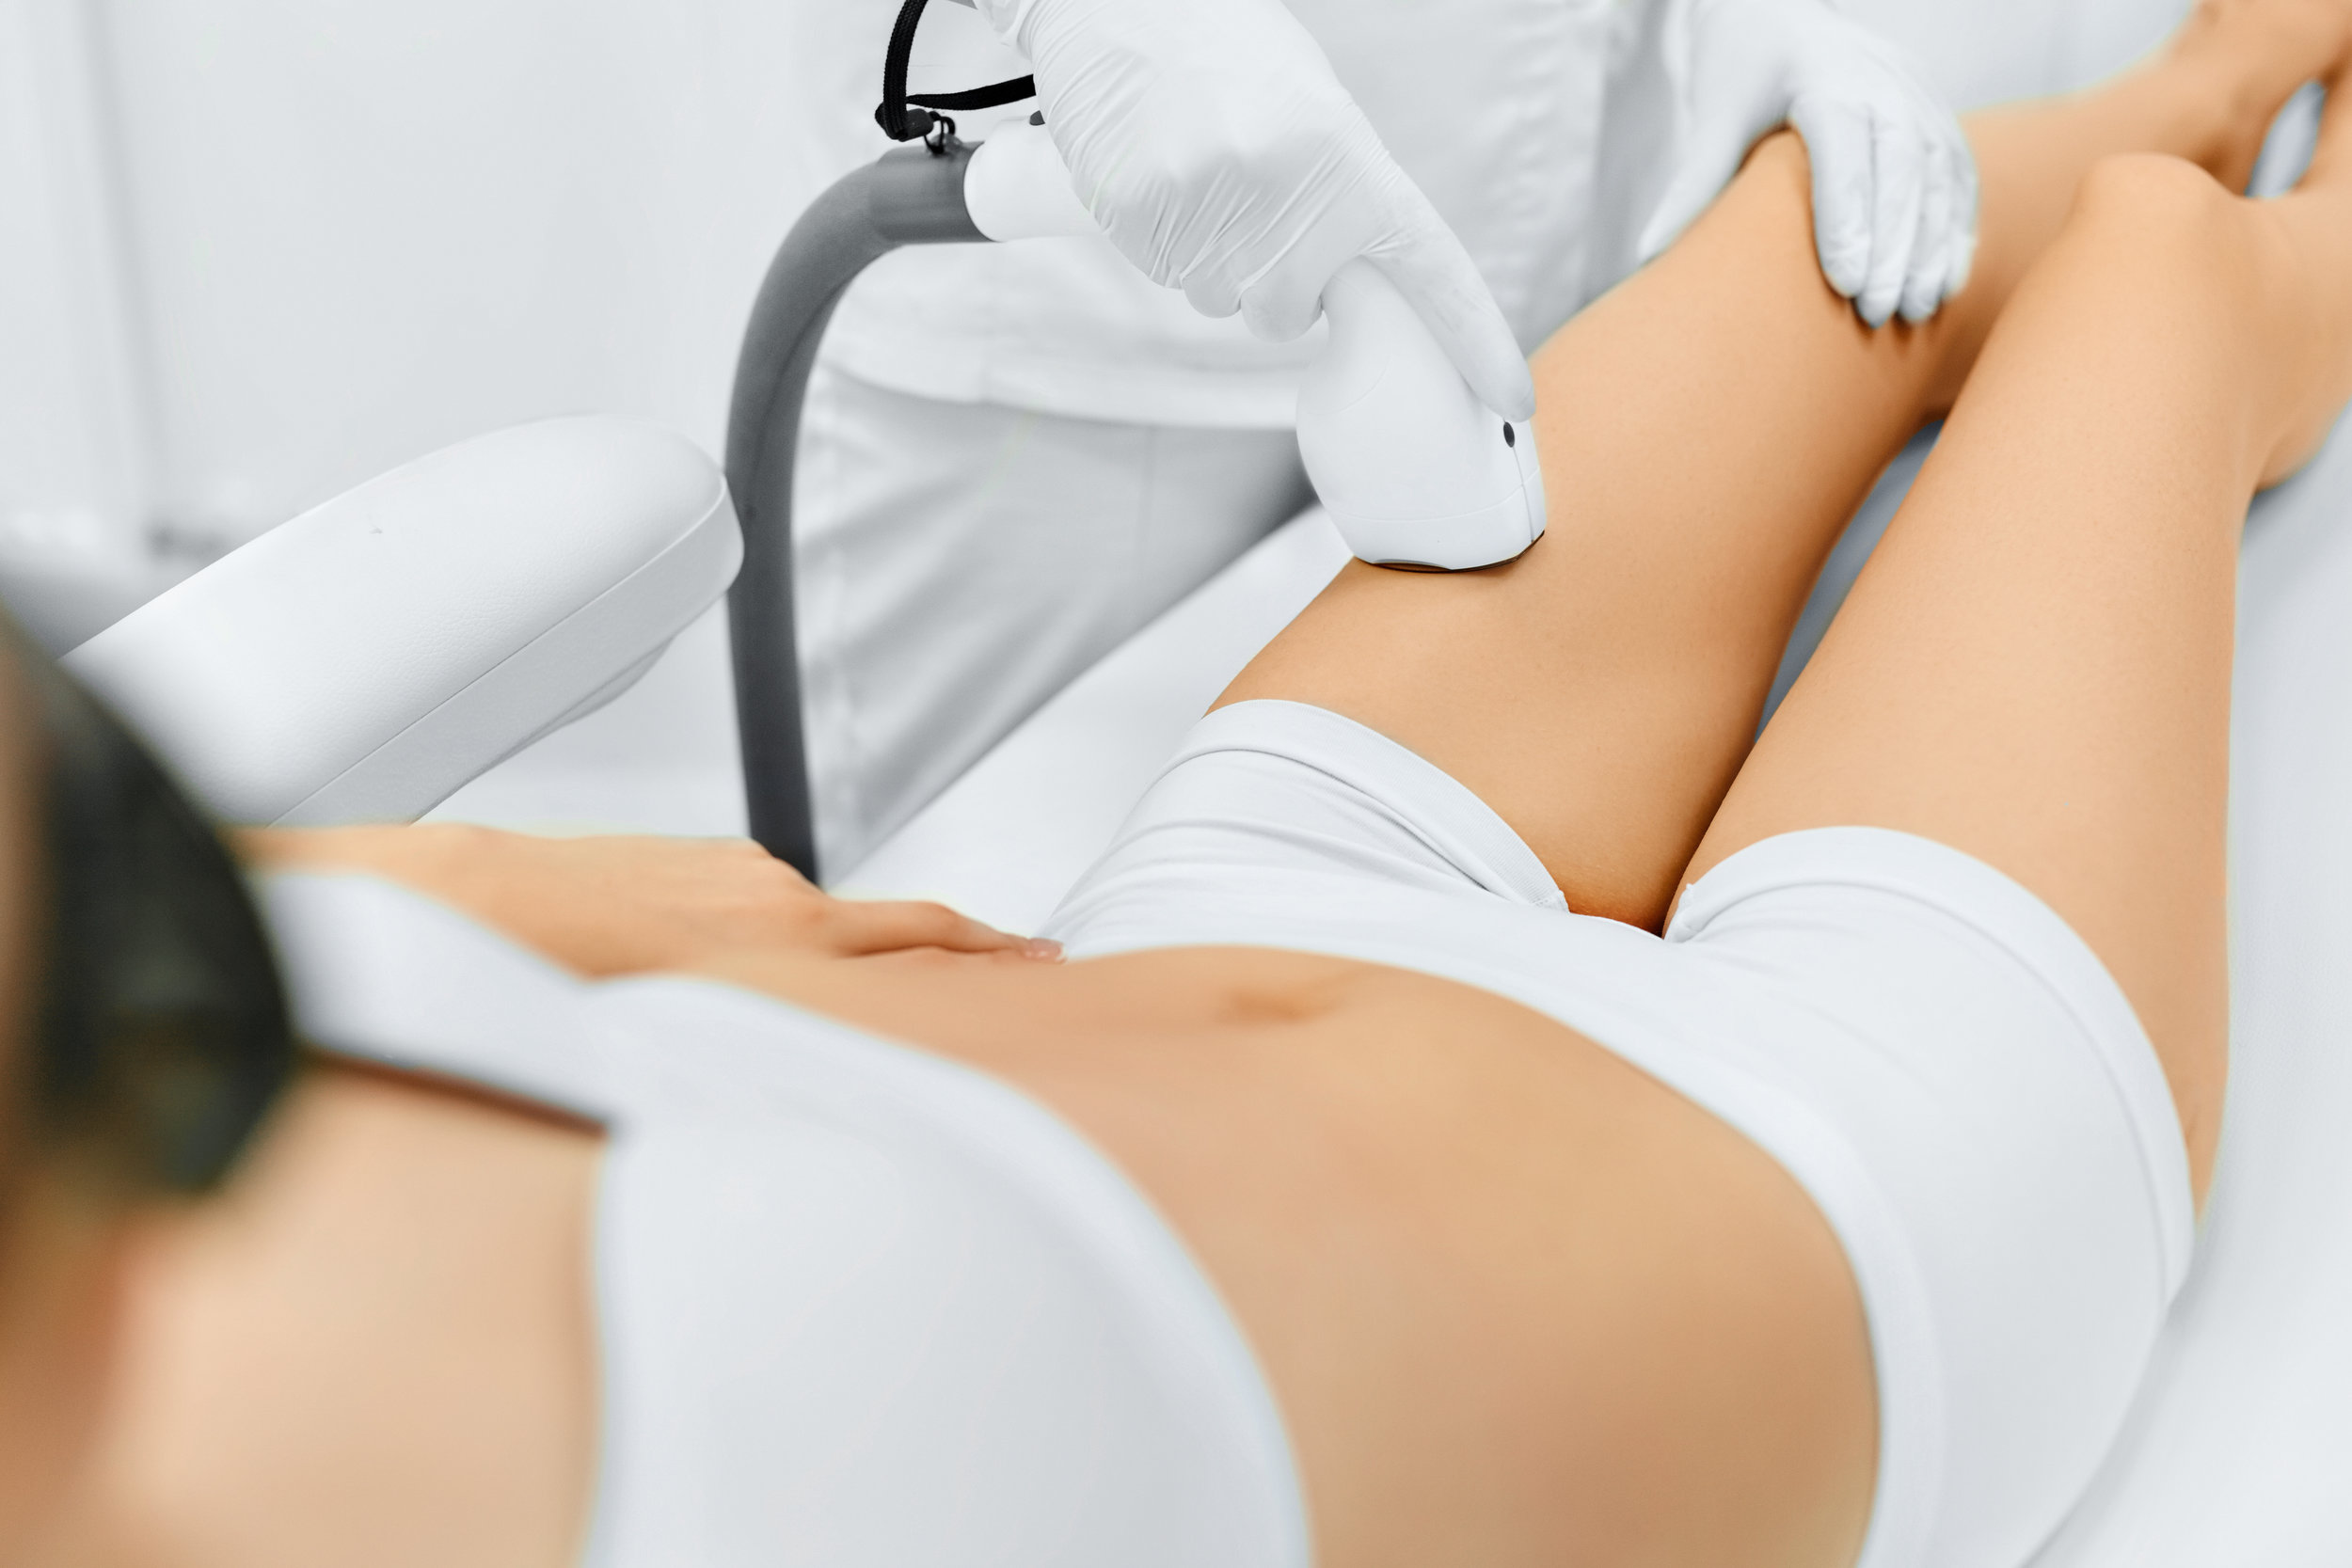 Woman Undergoing Hair Removal Treatment On Her Legs